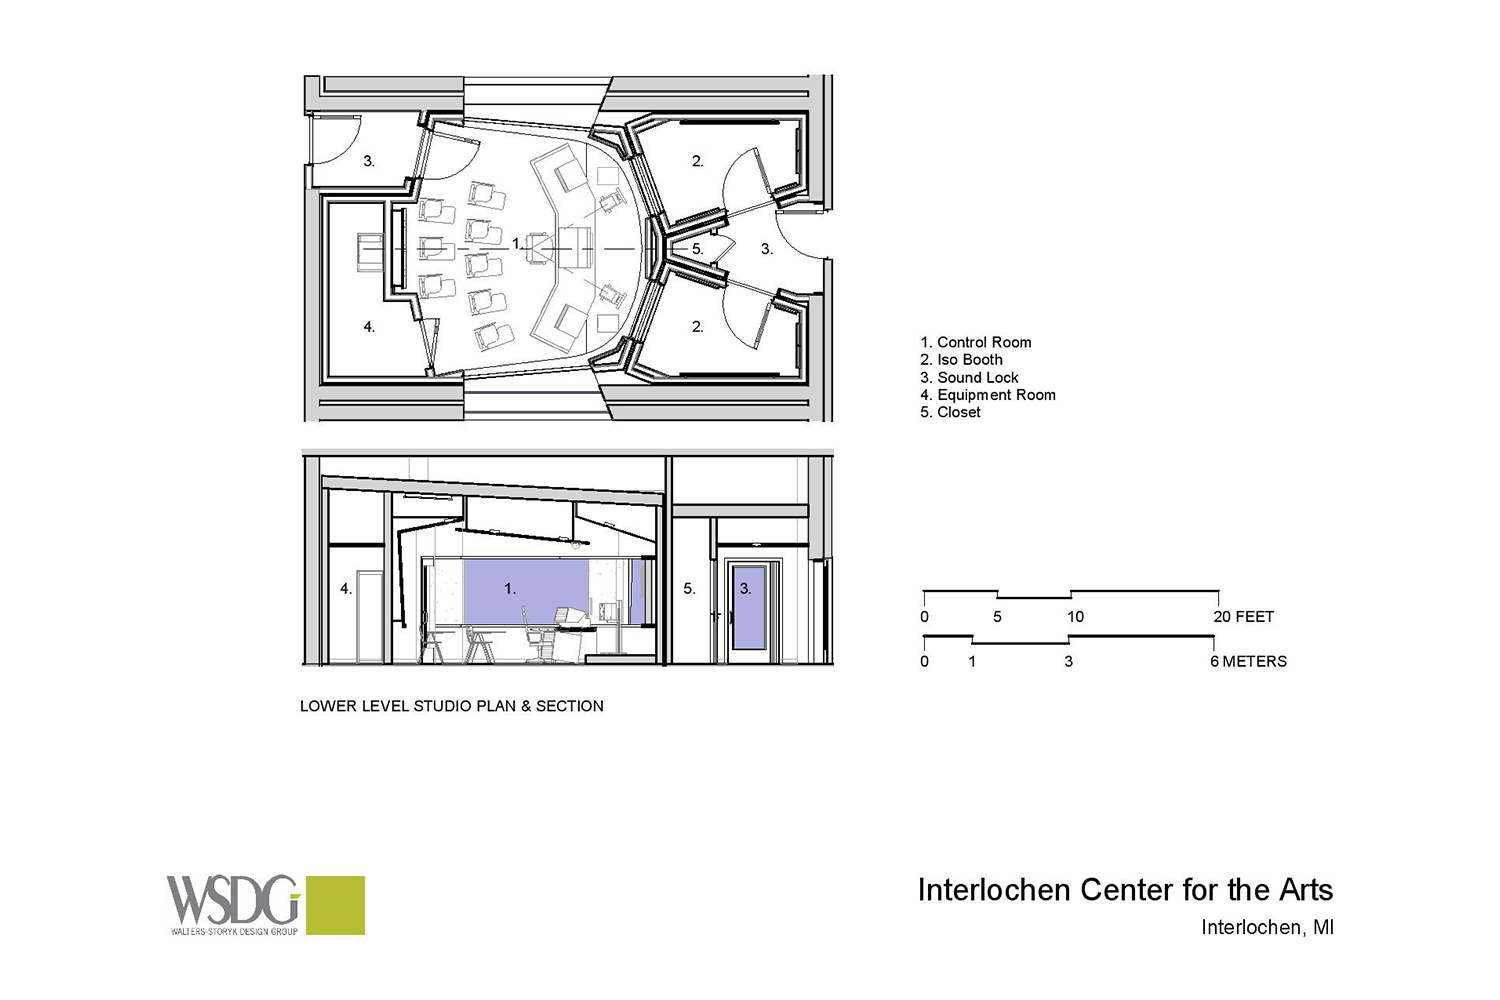 Interlochen has recently completed their new complex. A key component of the new complex is a state-of-the-art recording/teaching studio complex developed by WSDG. Presentation drawing 1, floor level.